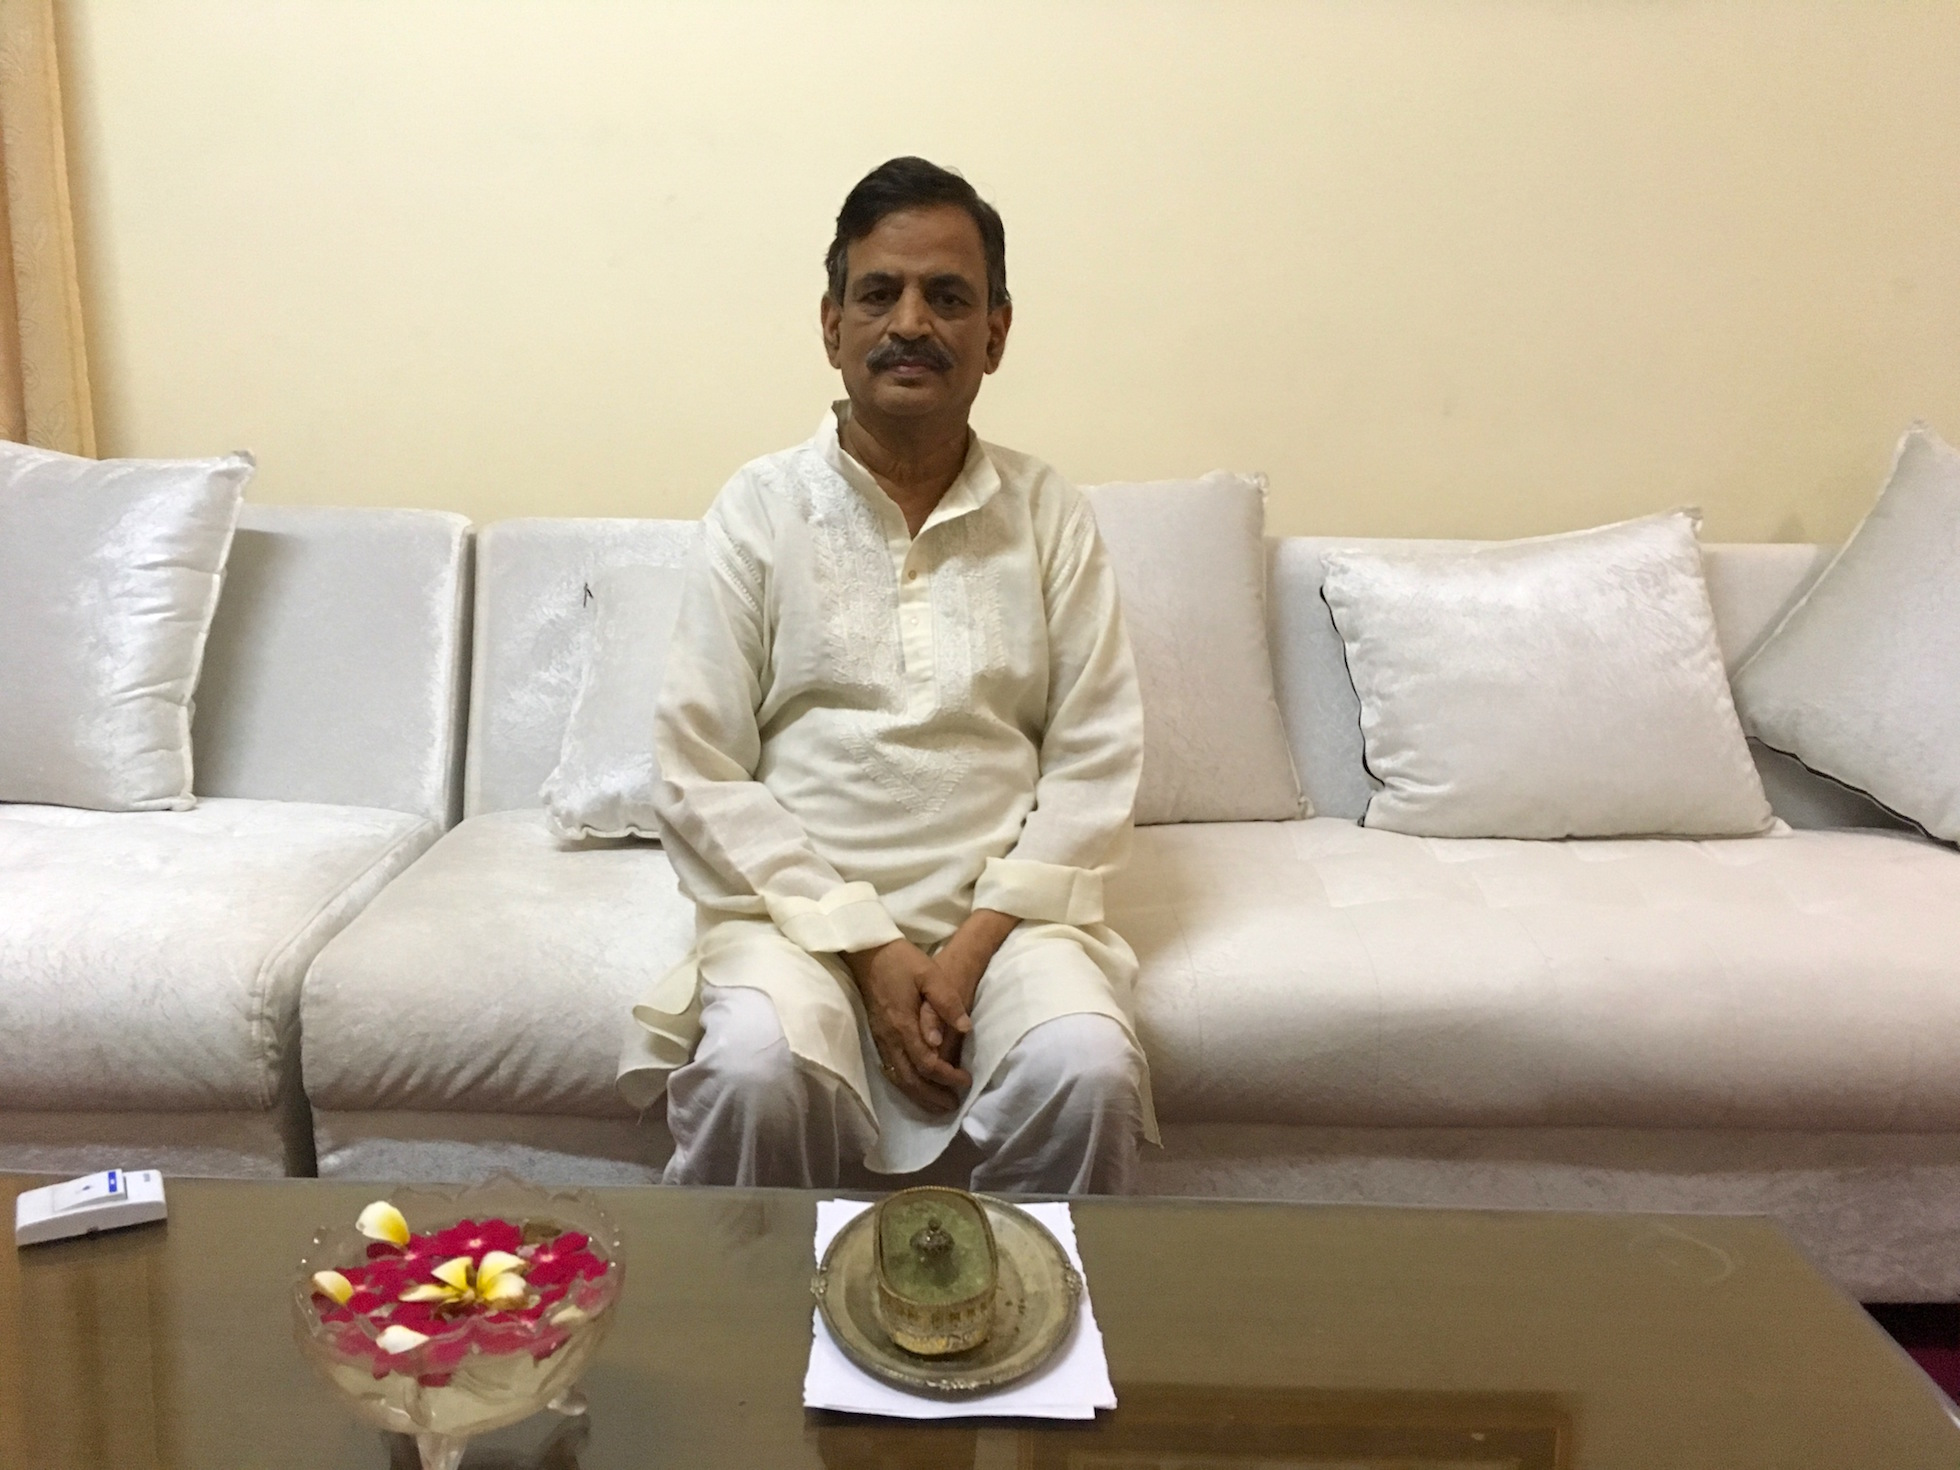 Rajeev Mishra, the former principal of BRD Medical College, at his residence in Gorakhpur. Photo credit: Menaka Rao.